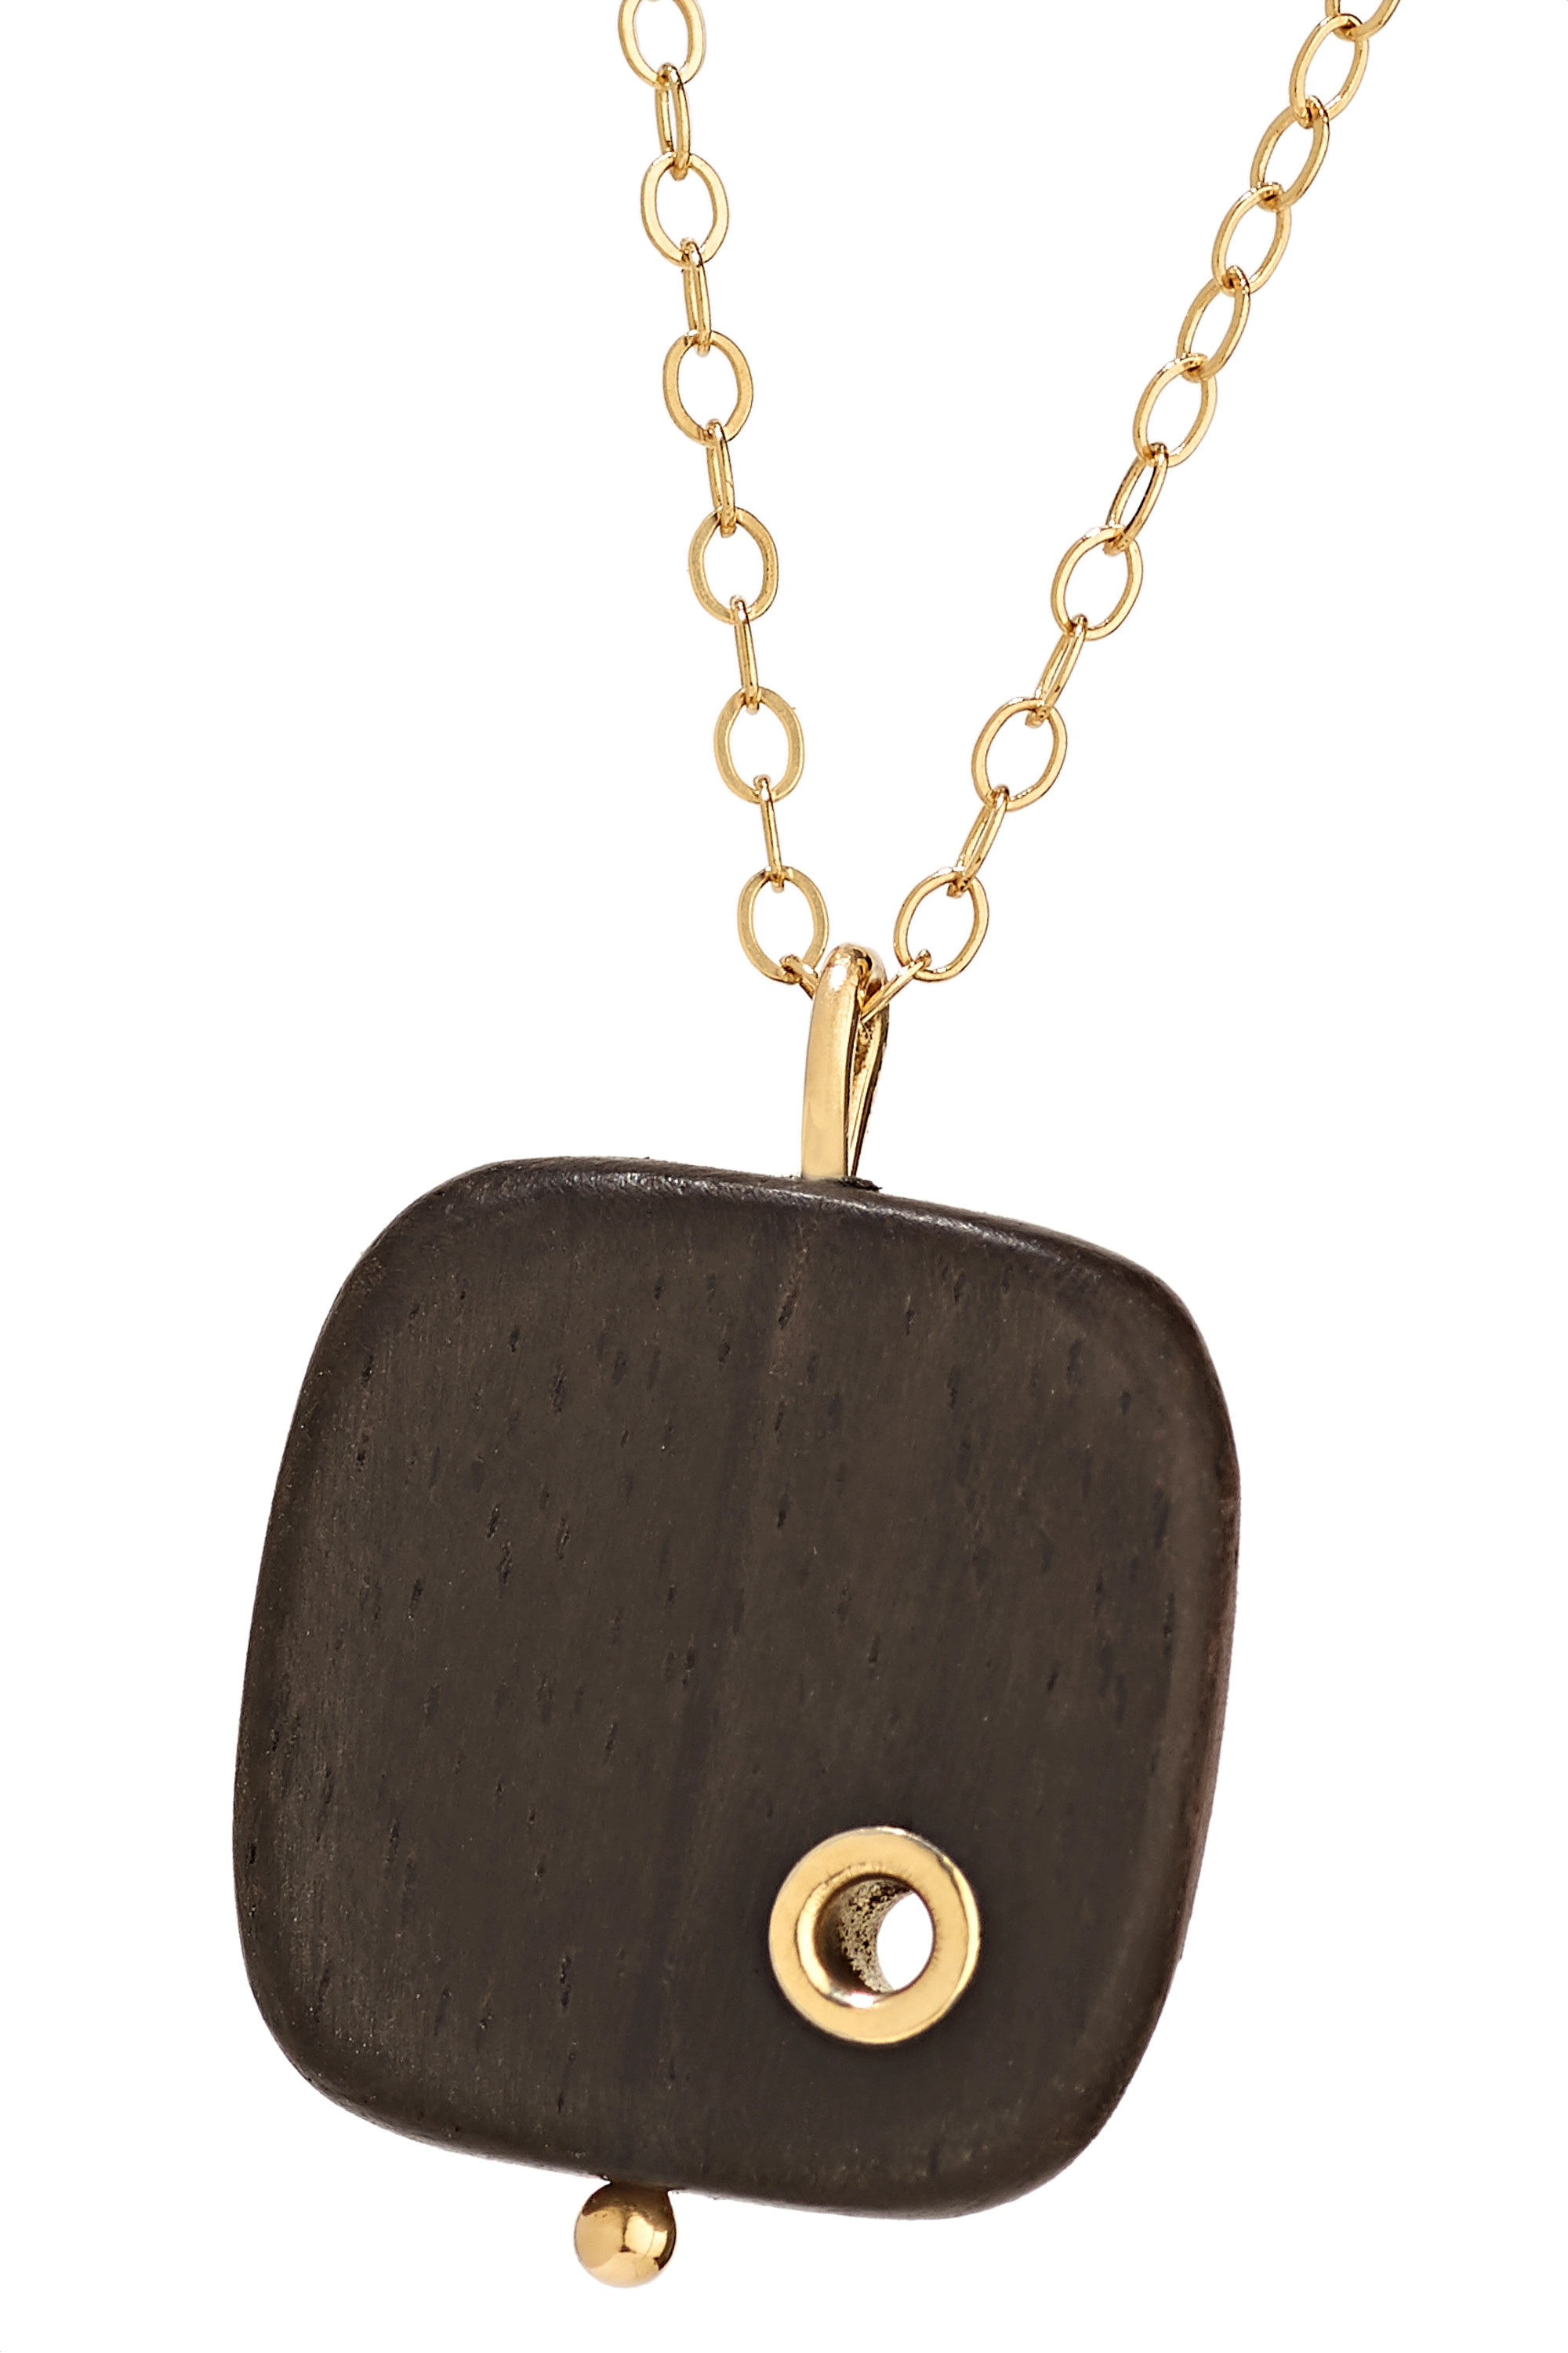 MELISSA JOY MANNING 14-karat gold ebony necklace